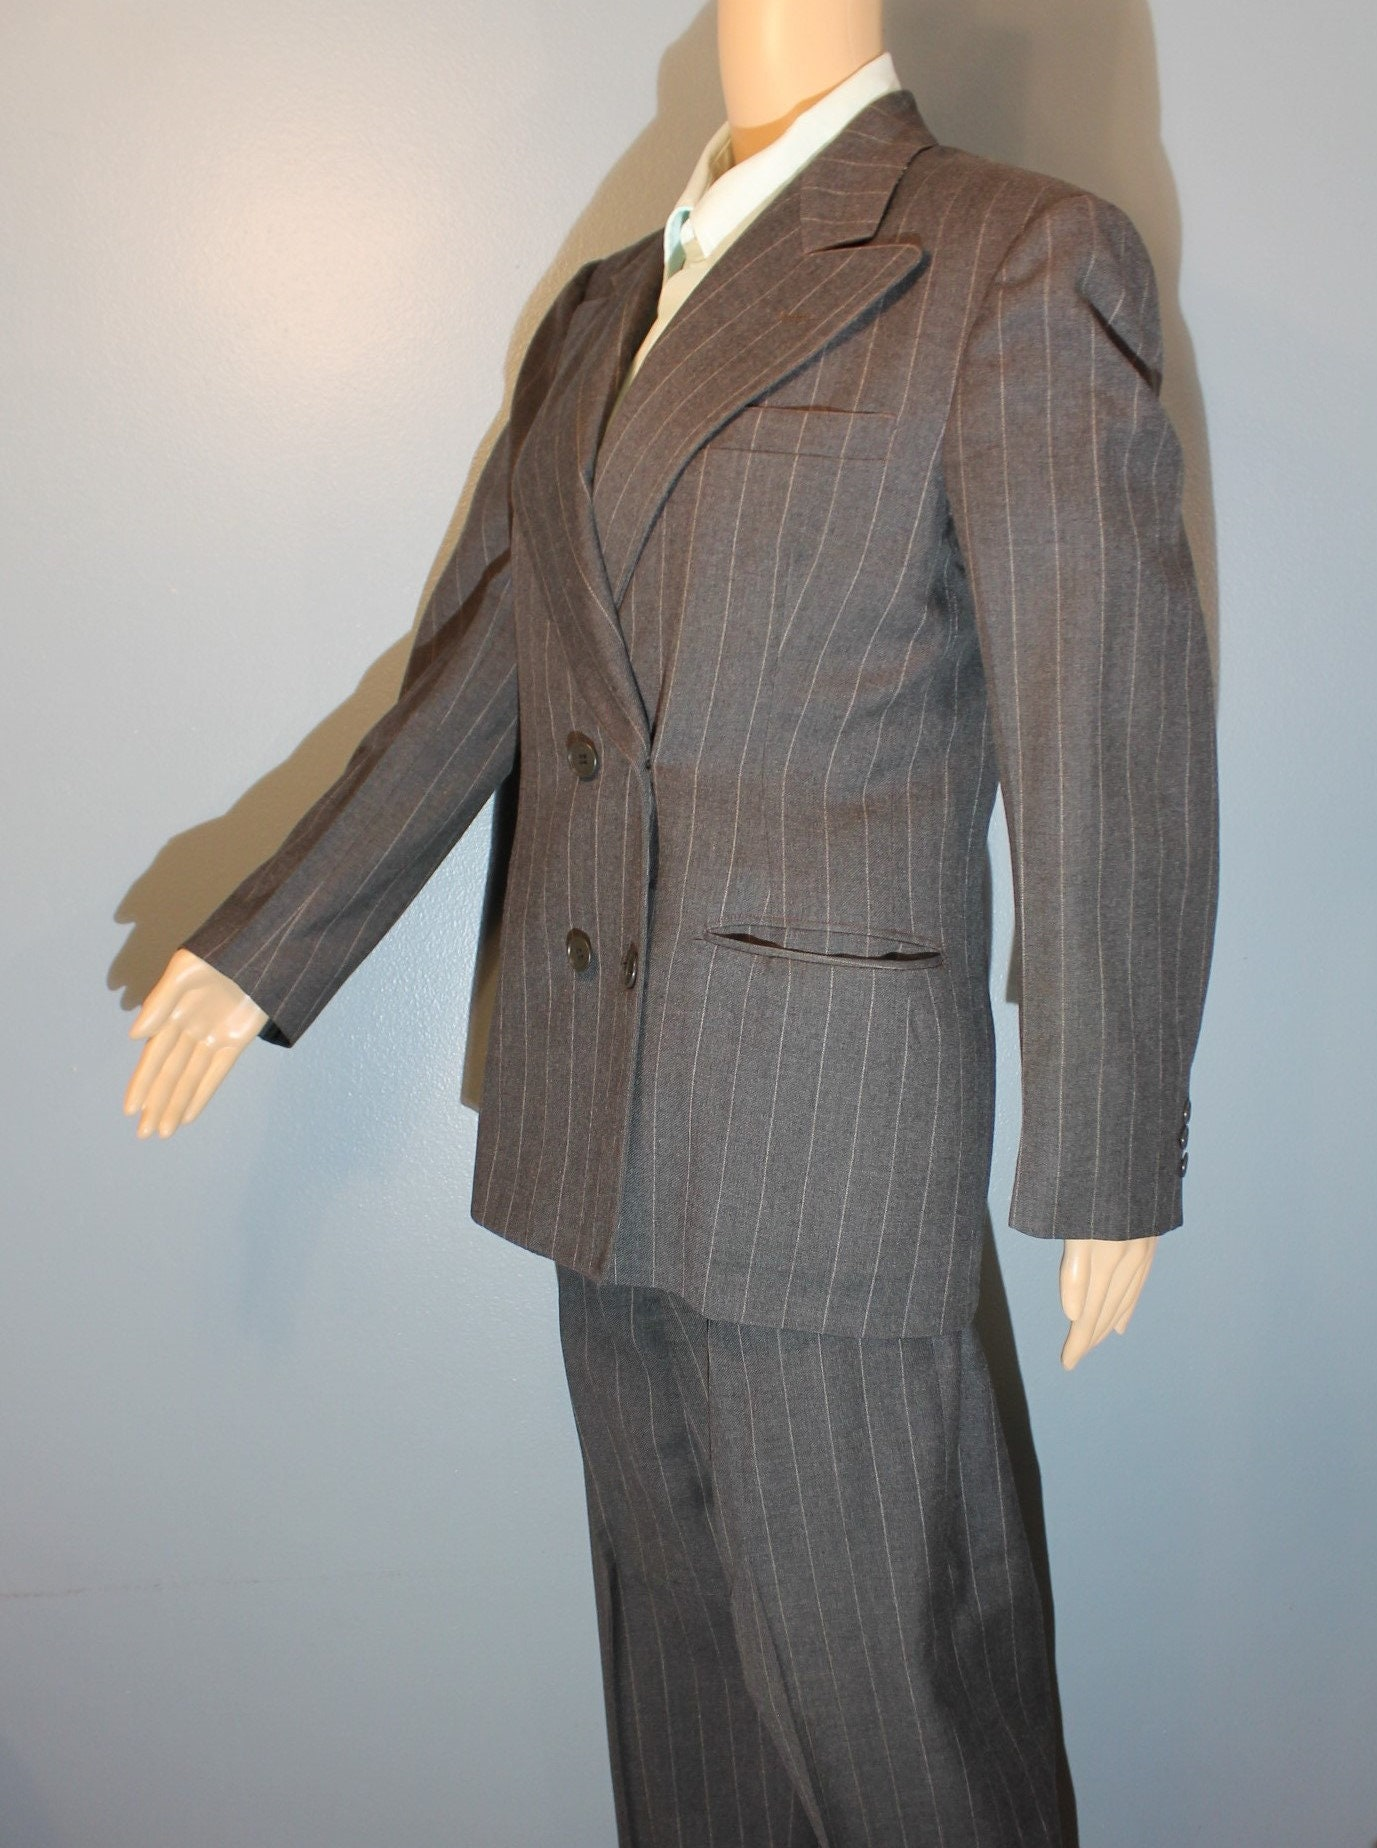 1950s Mens Suits & Sport Coats | 50s Suits & Blazers Vintage 1950s Mens Case Clothes Quality Hand Tailored Gray Pinstripe Wool Two-Piece Suit Amalgamated Workers Union $0.00 AT vintagedancer.com